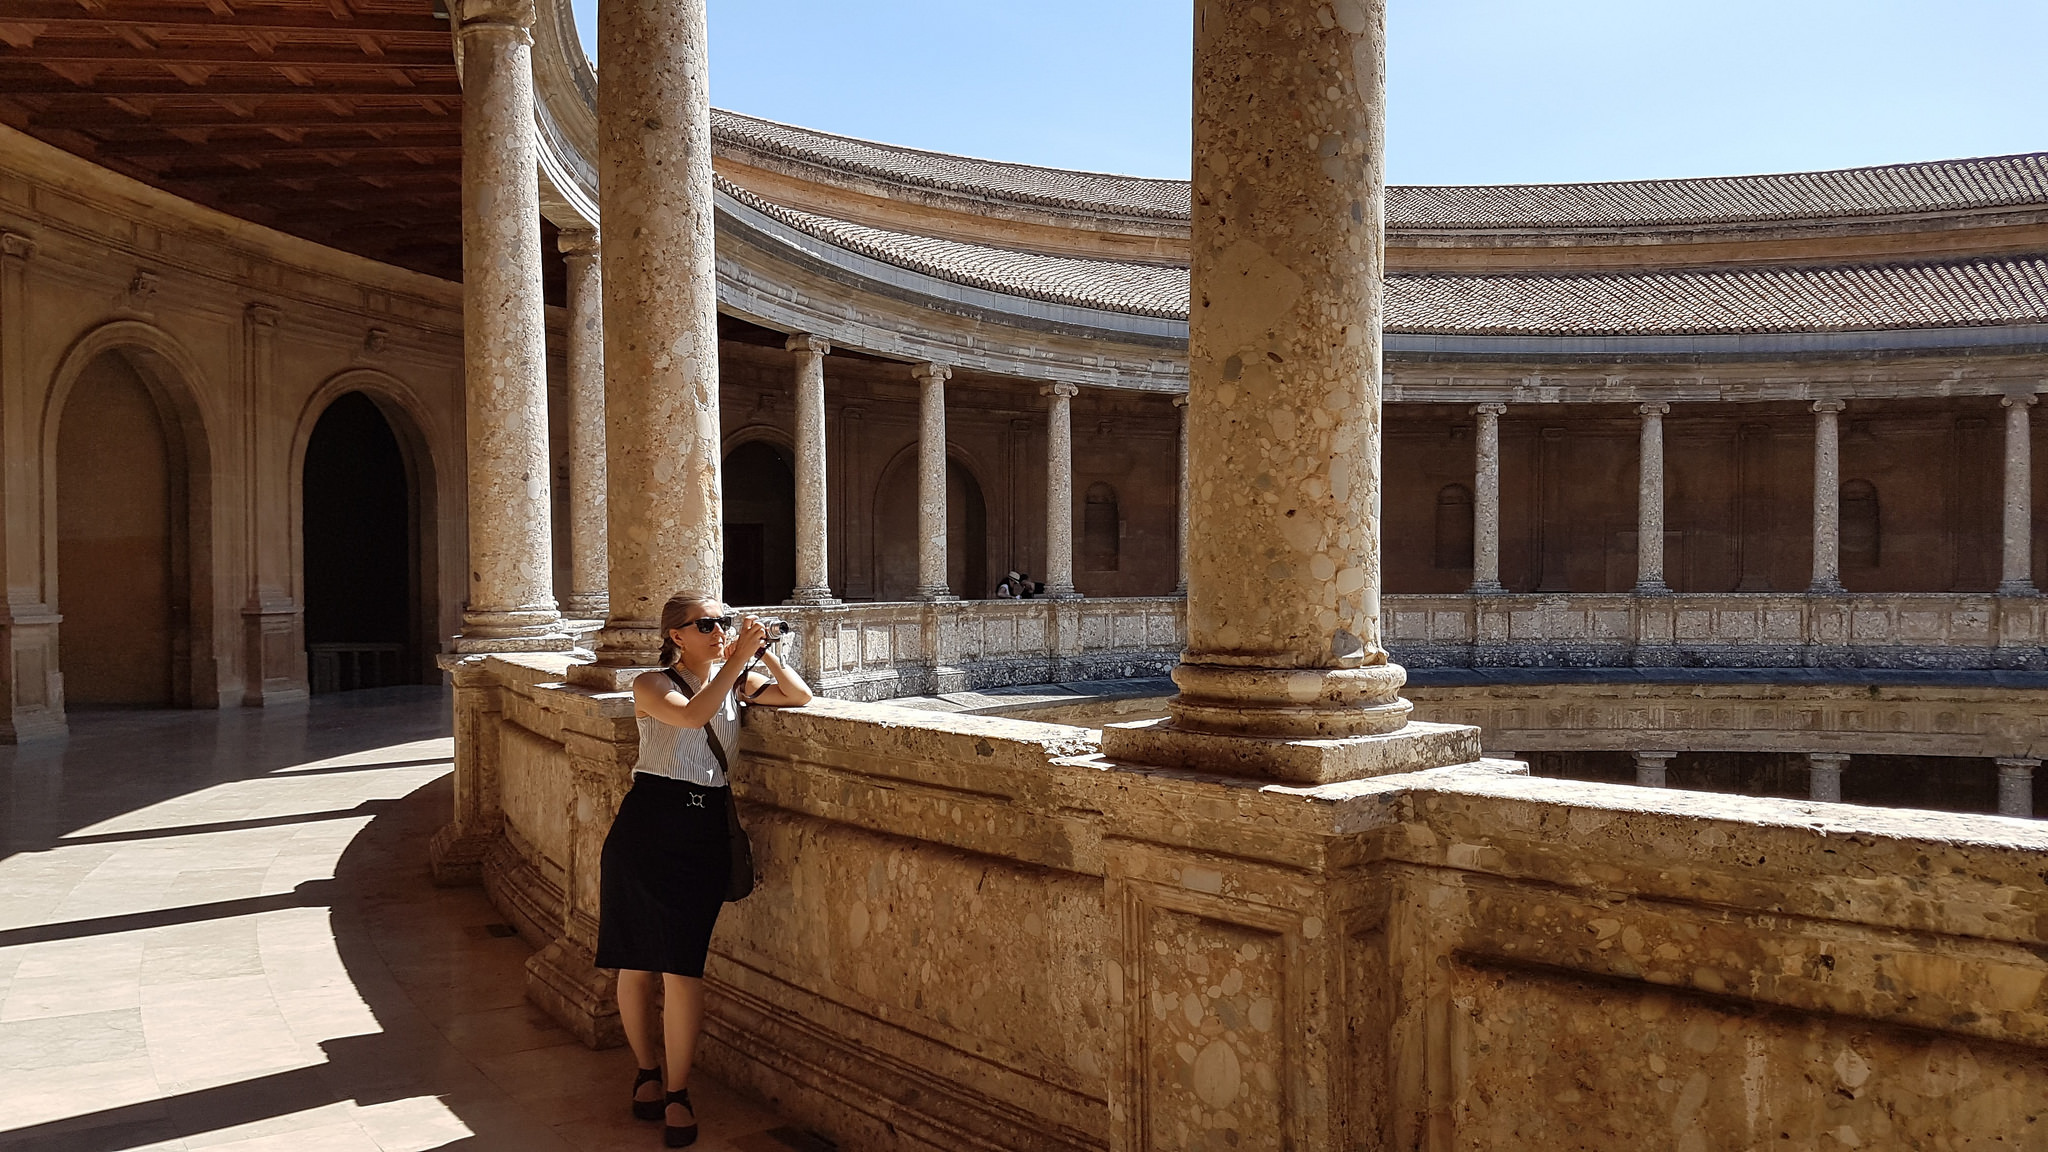 Geraldine taking pictures in Granada's Al Hambra